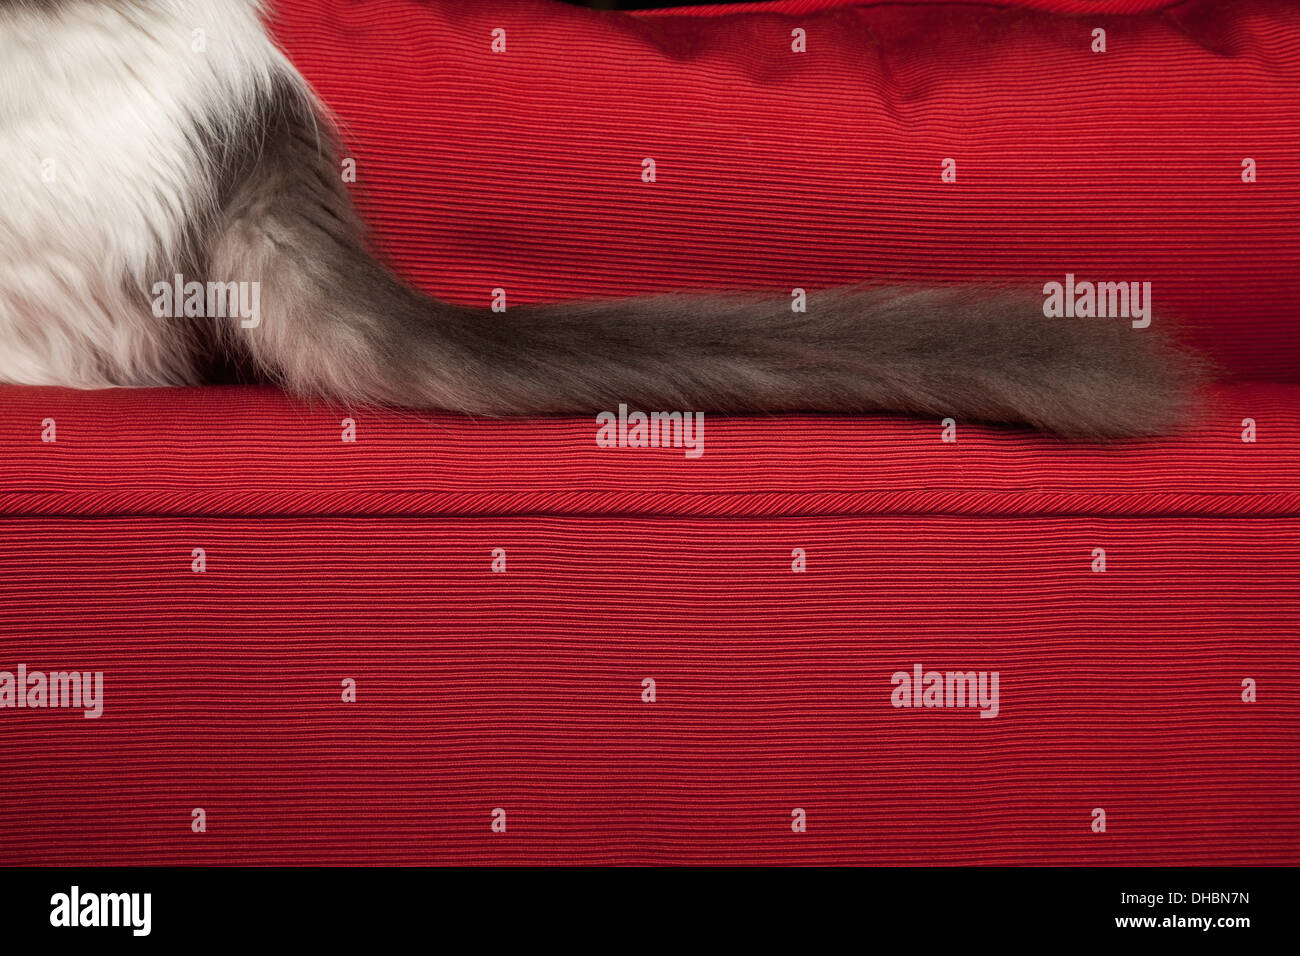 A kitten on a red sofa, view of its long fluffy black tail. - Stock Image